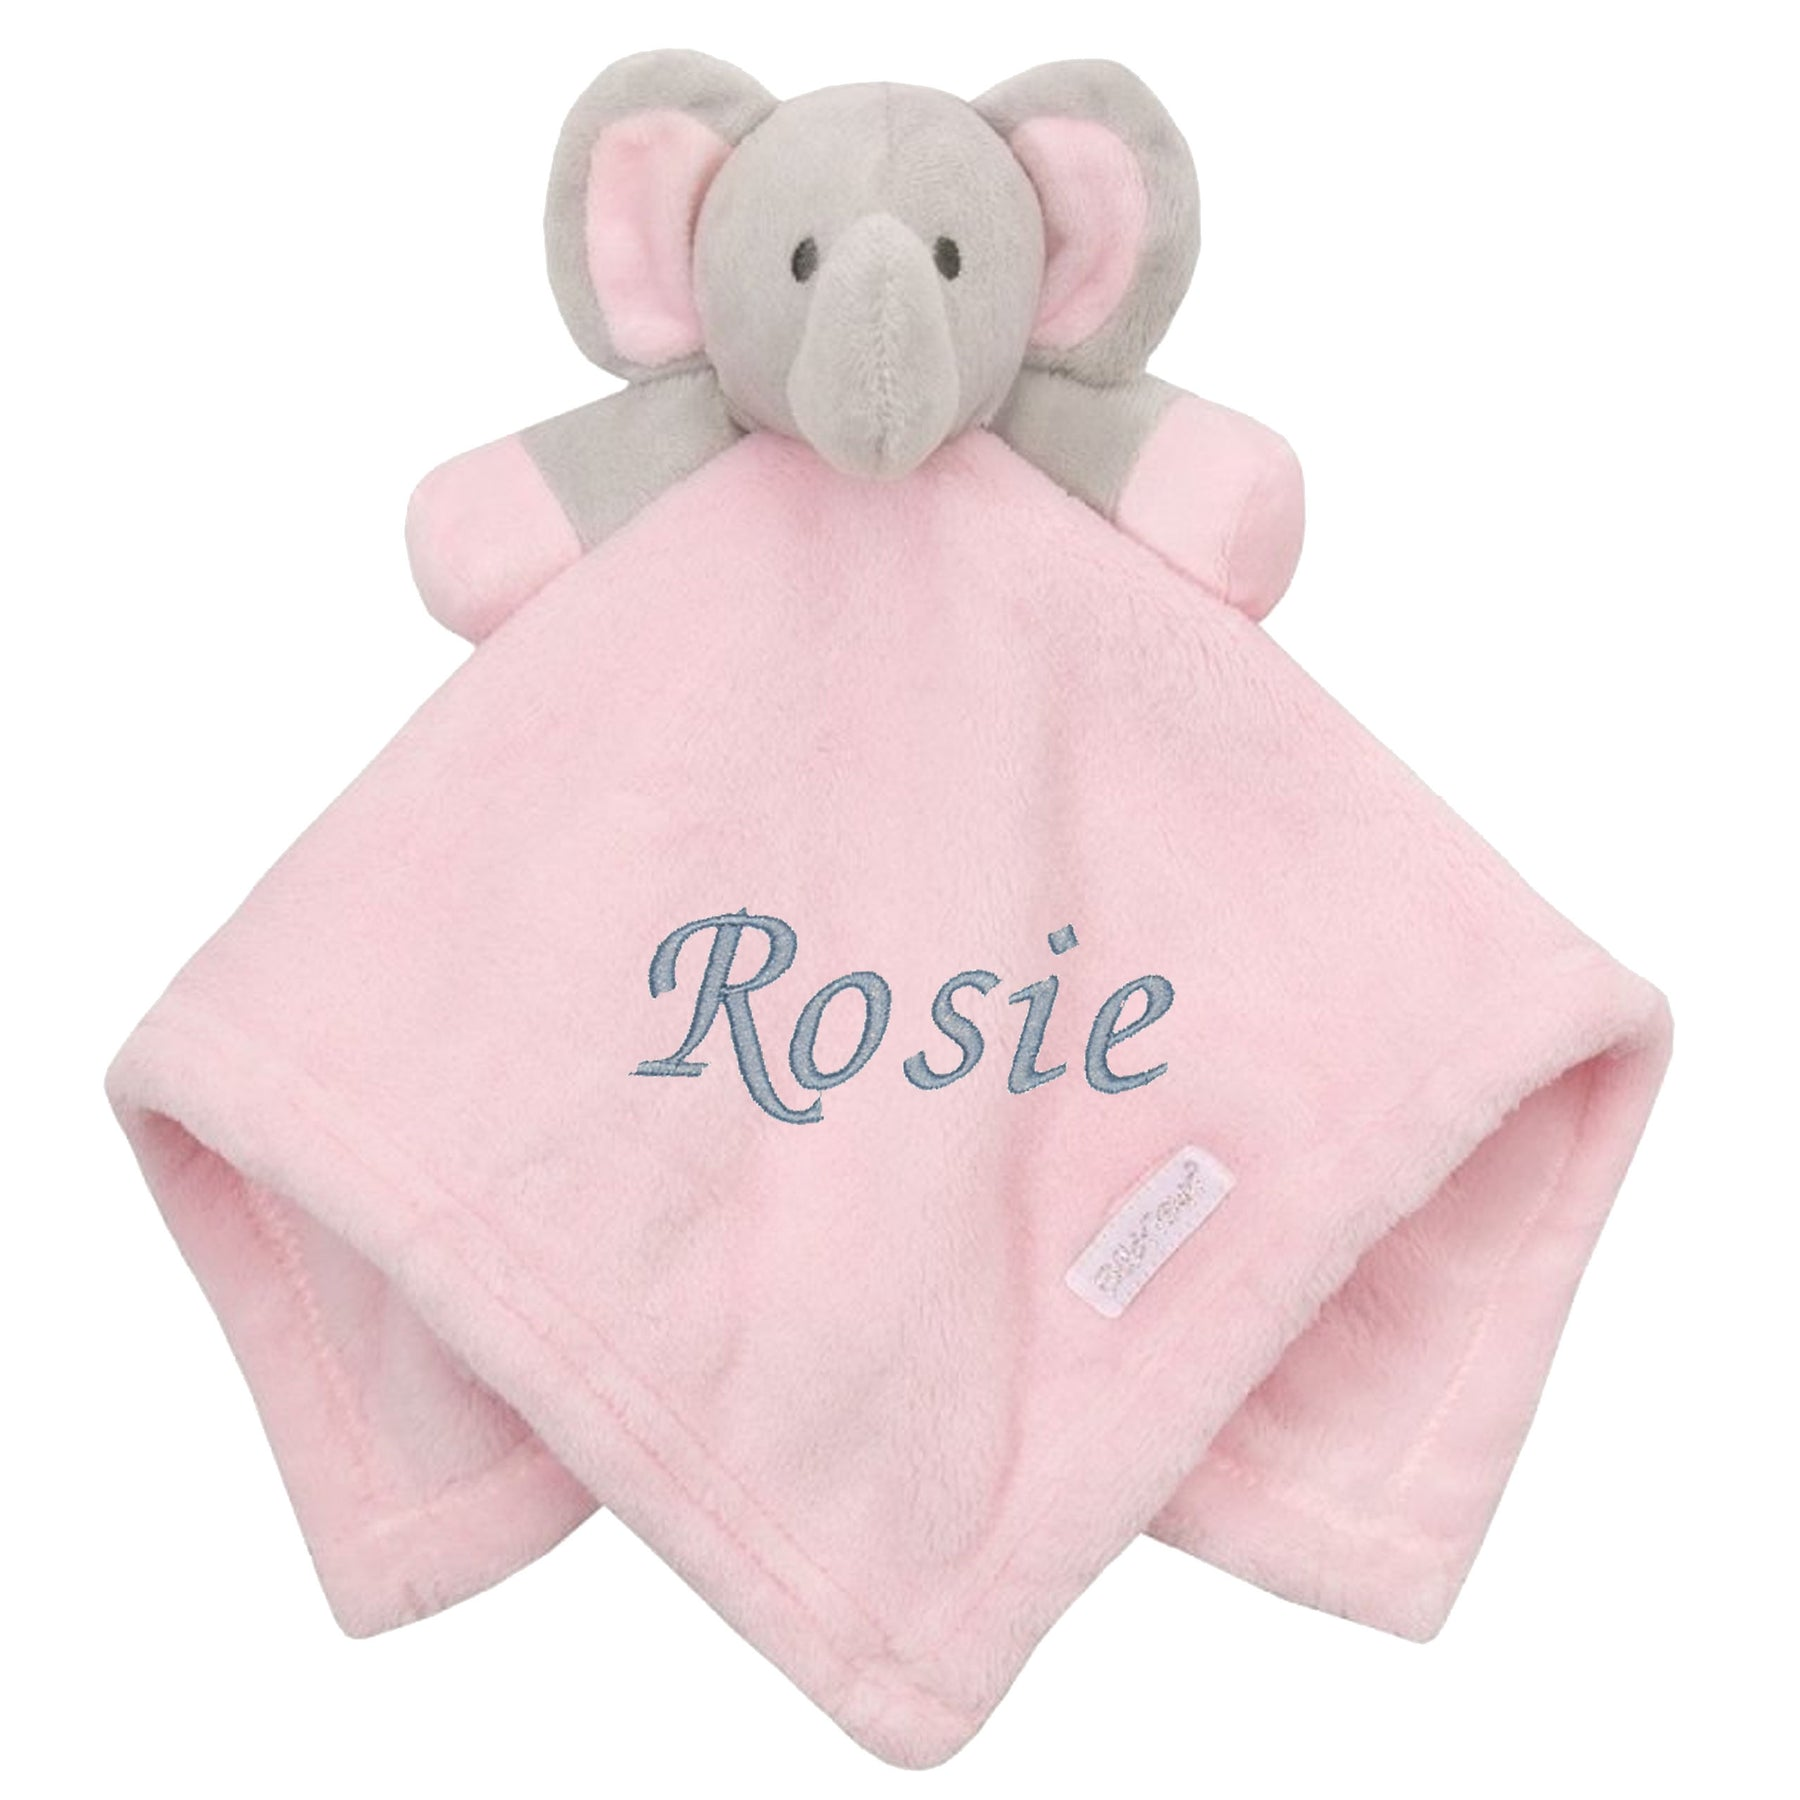 Choosing a quality baby blanket for girls is important